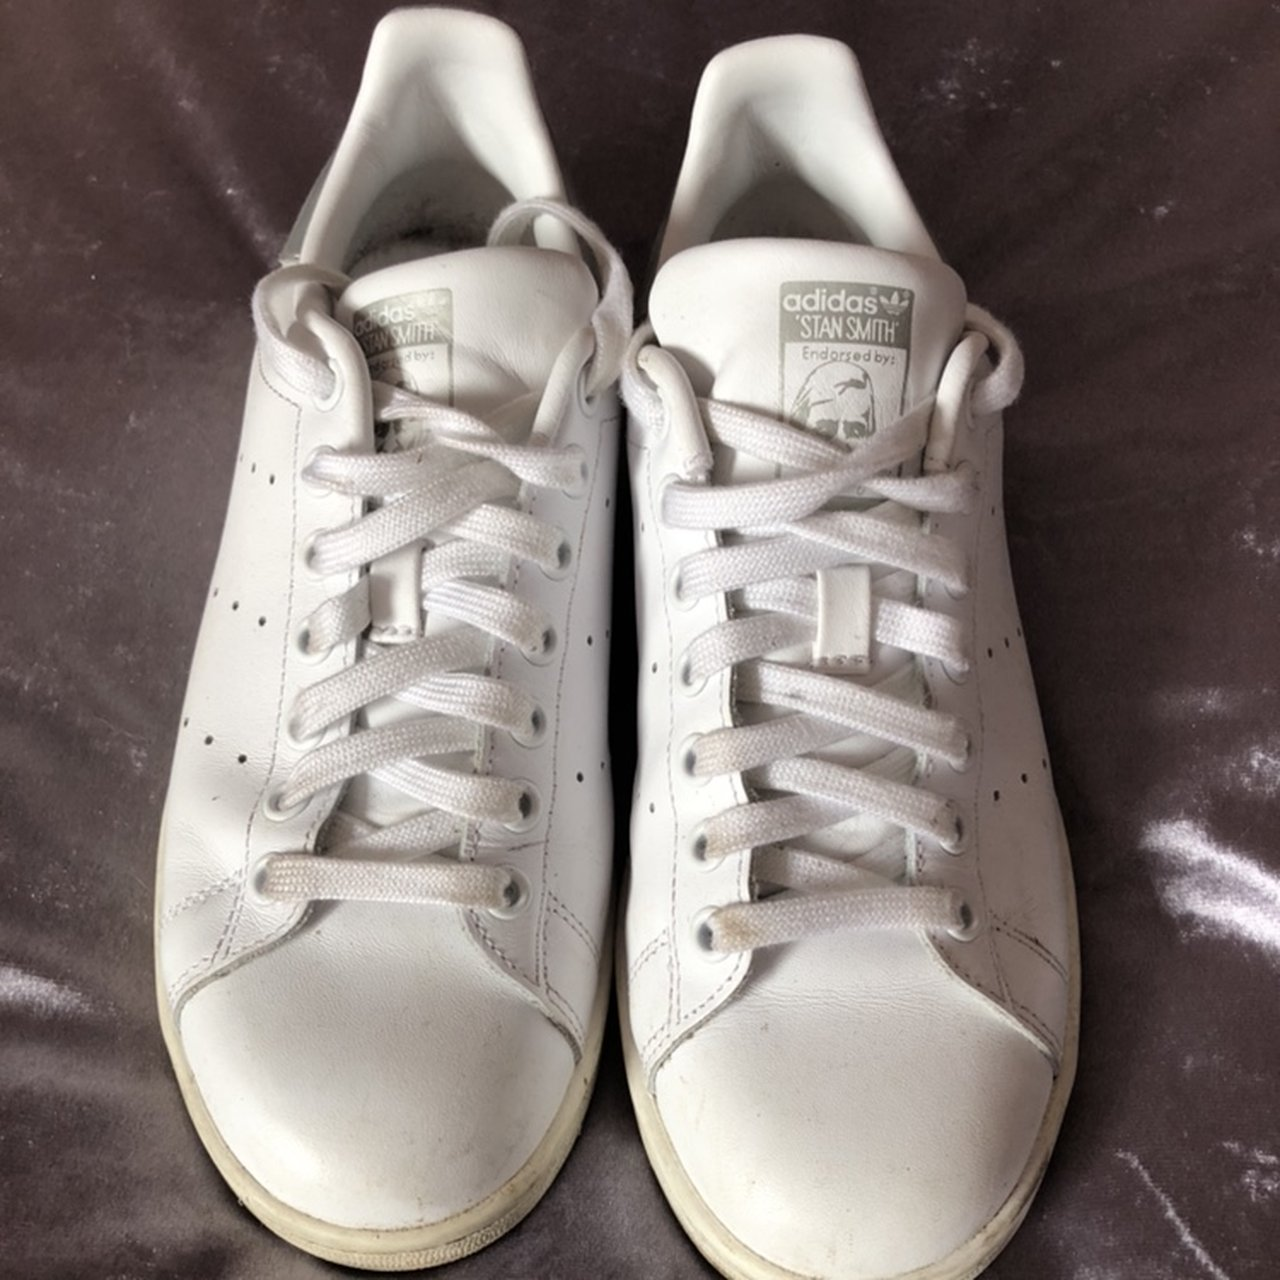 adidas stan smith uk 6.5